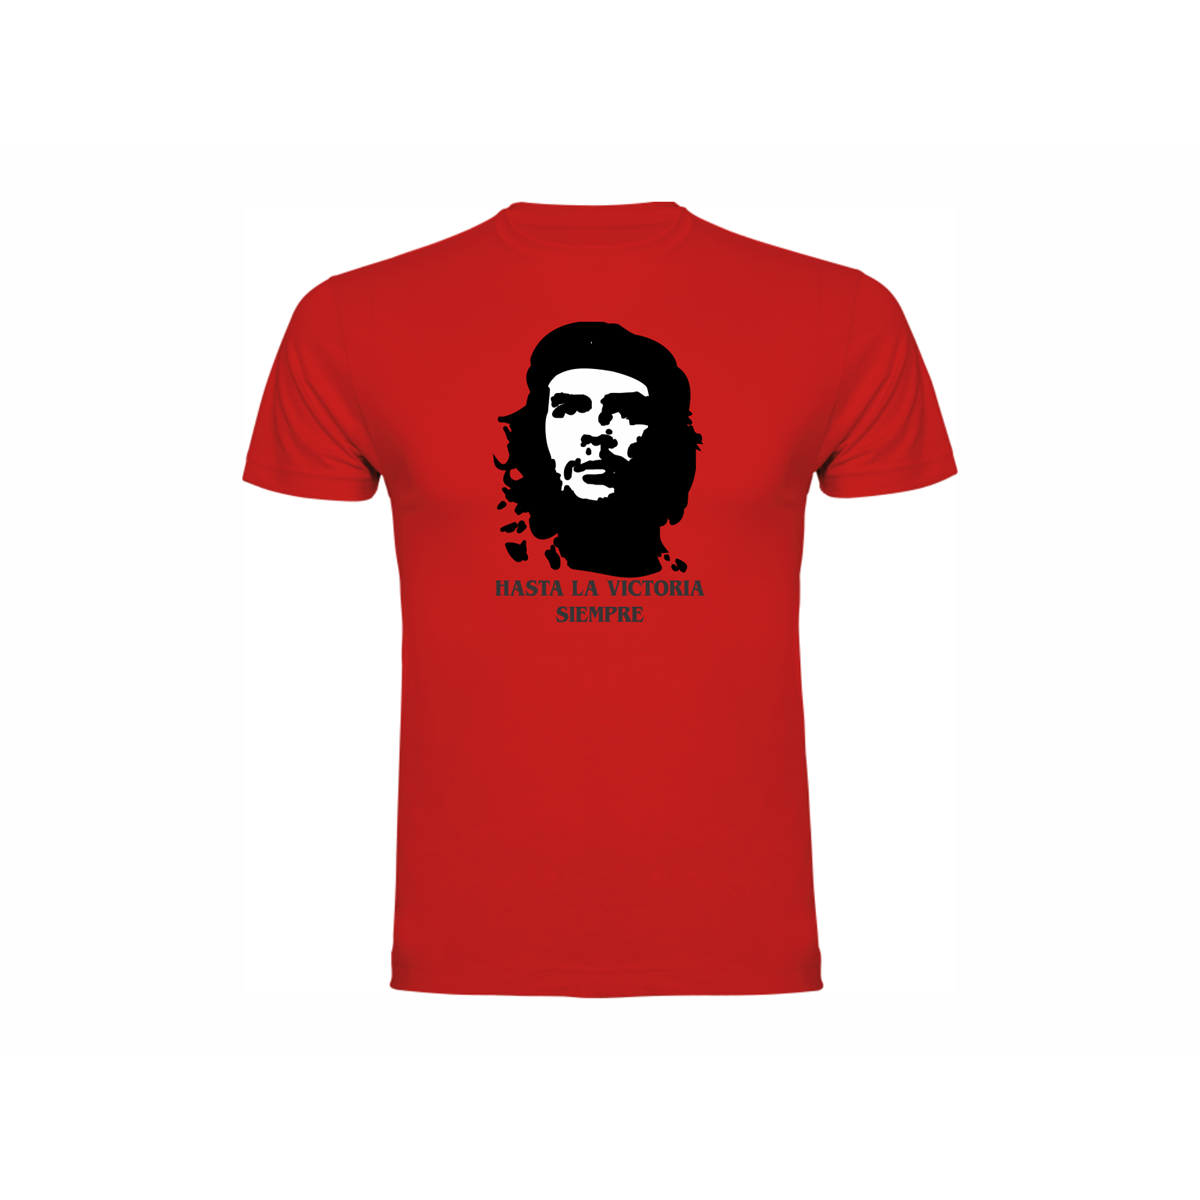 che guevara t shirt cool with che guevara t shirt che. Black Bedroom Furniture Sets. Home Design Ideas